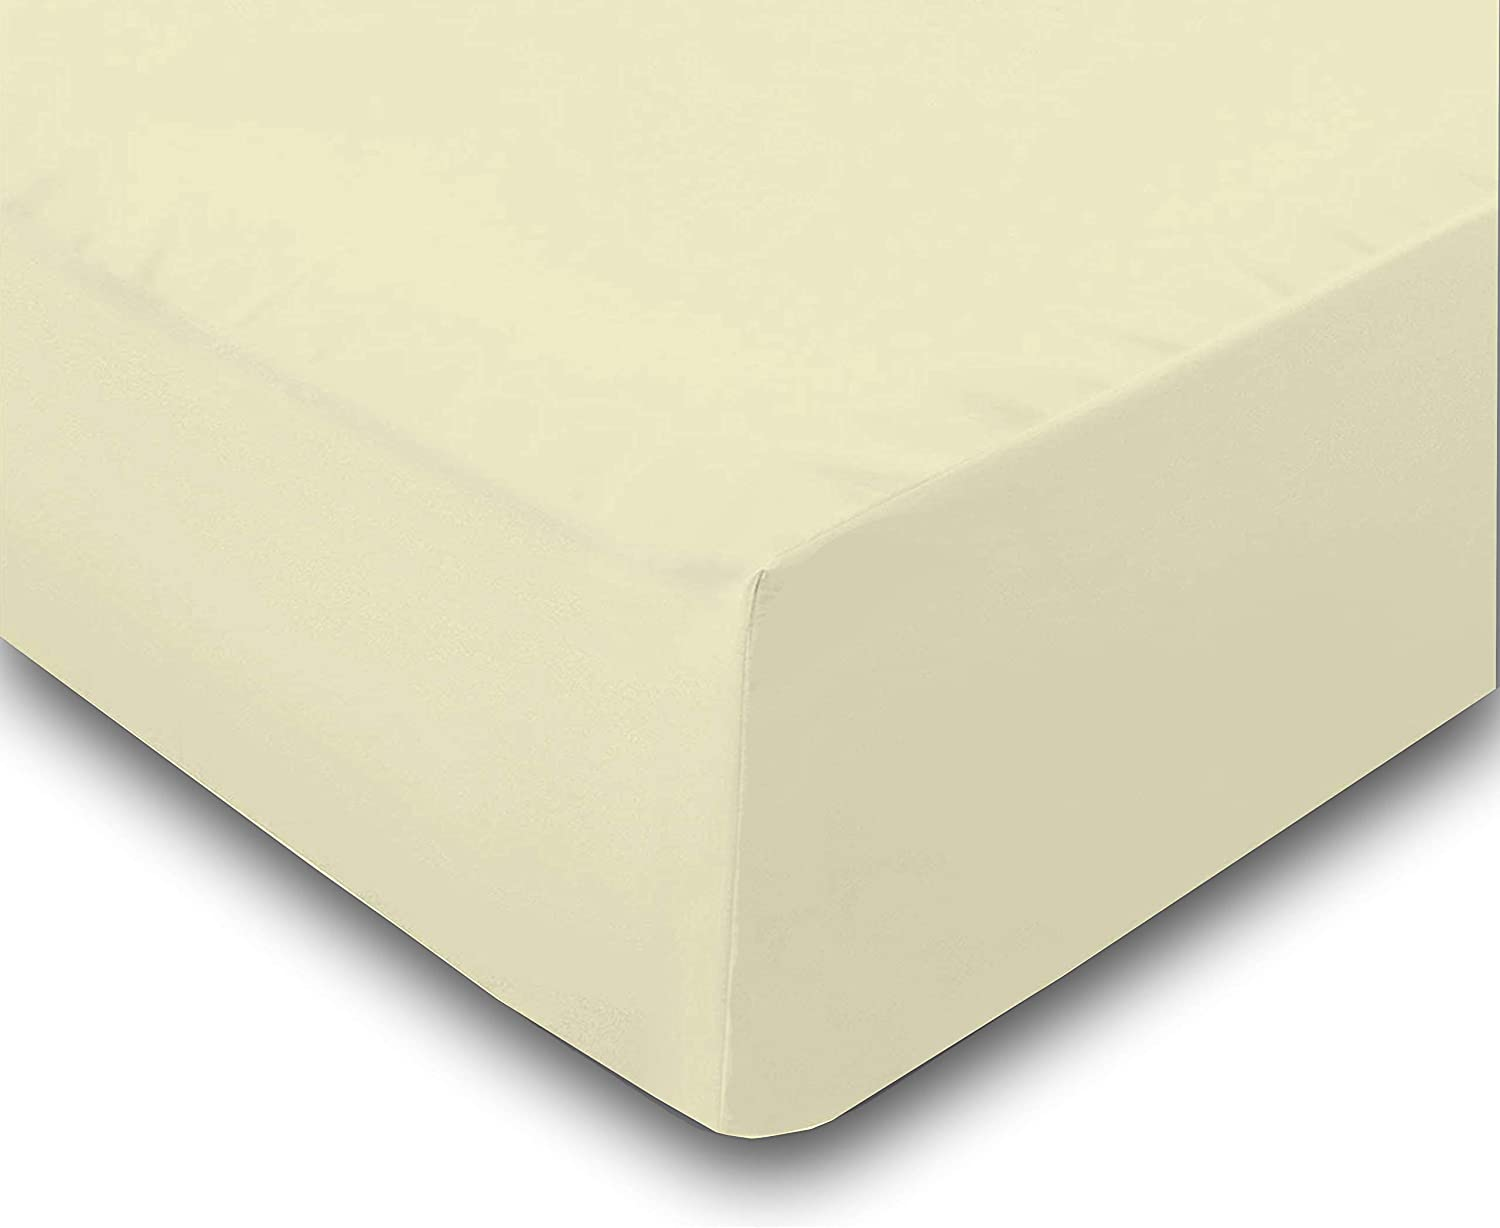 Infinite Weaves TwinXL Size Flat Sheet Only 1 PC TwinXL, White 300 Thread Count Ultra-Soft 100/% Cotton Long Staple Sateen Weave Bedding Sheet Hypoallergenic /& Fade Resistant Luxurious